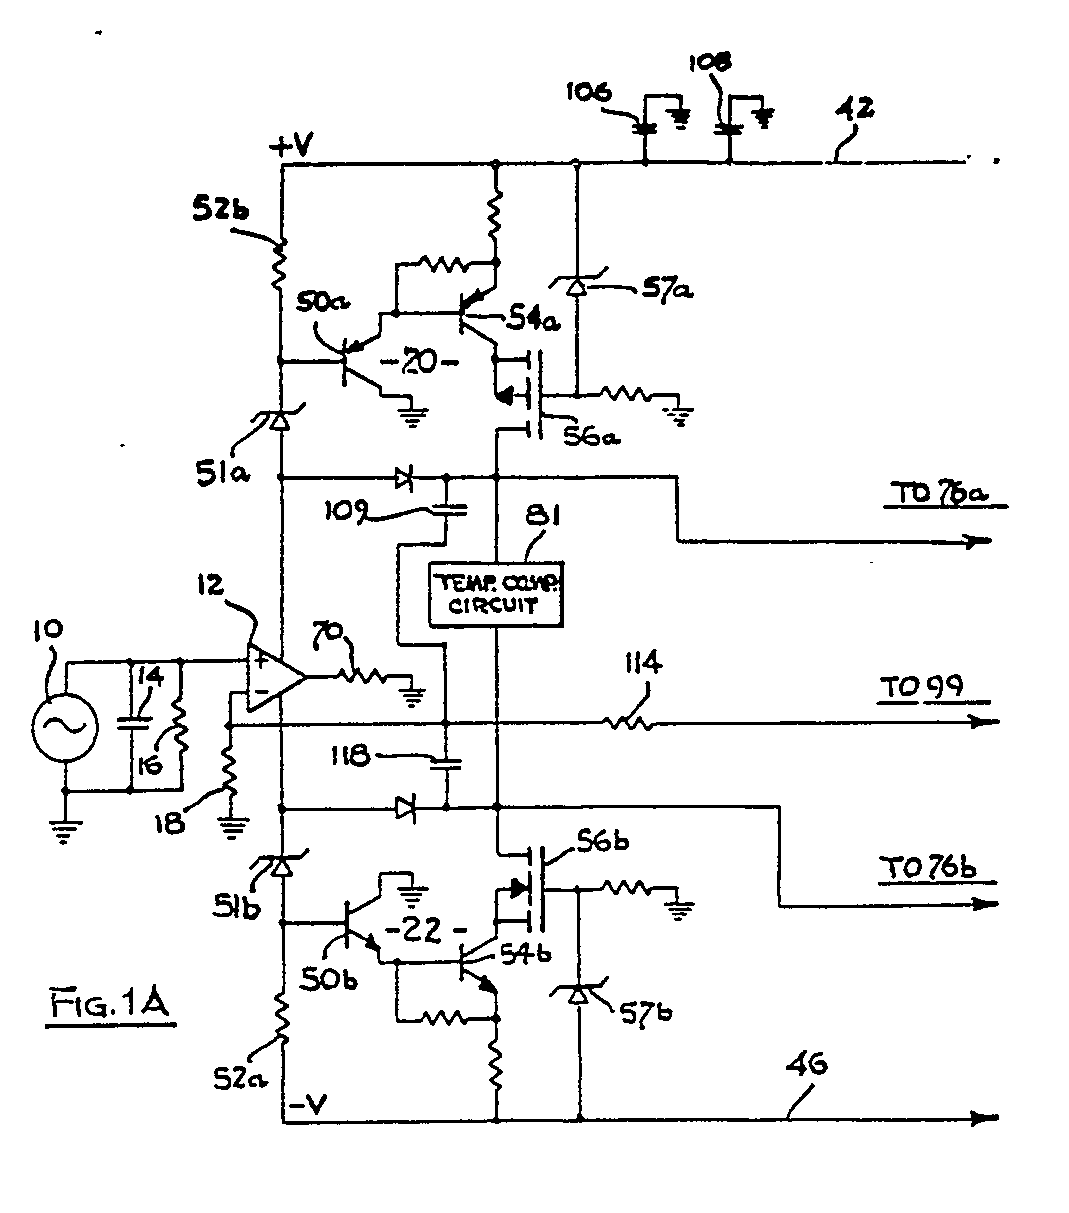 audio amplifier darlington       google com  patents  ep0320540a1